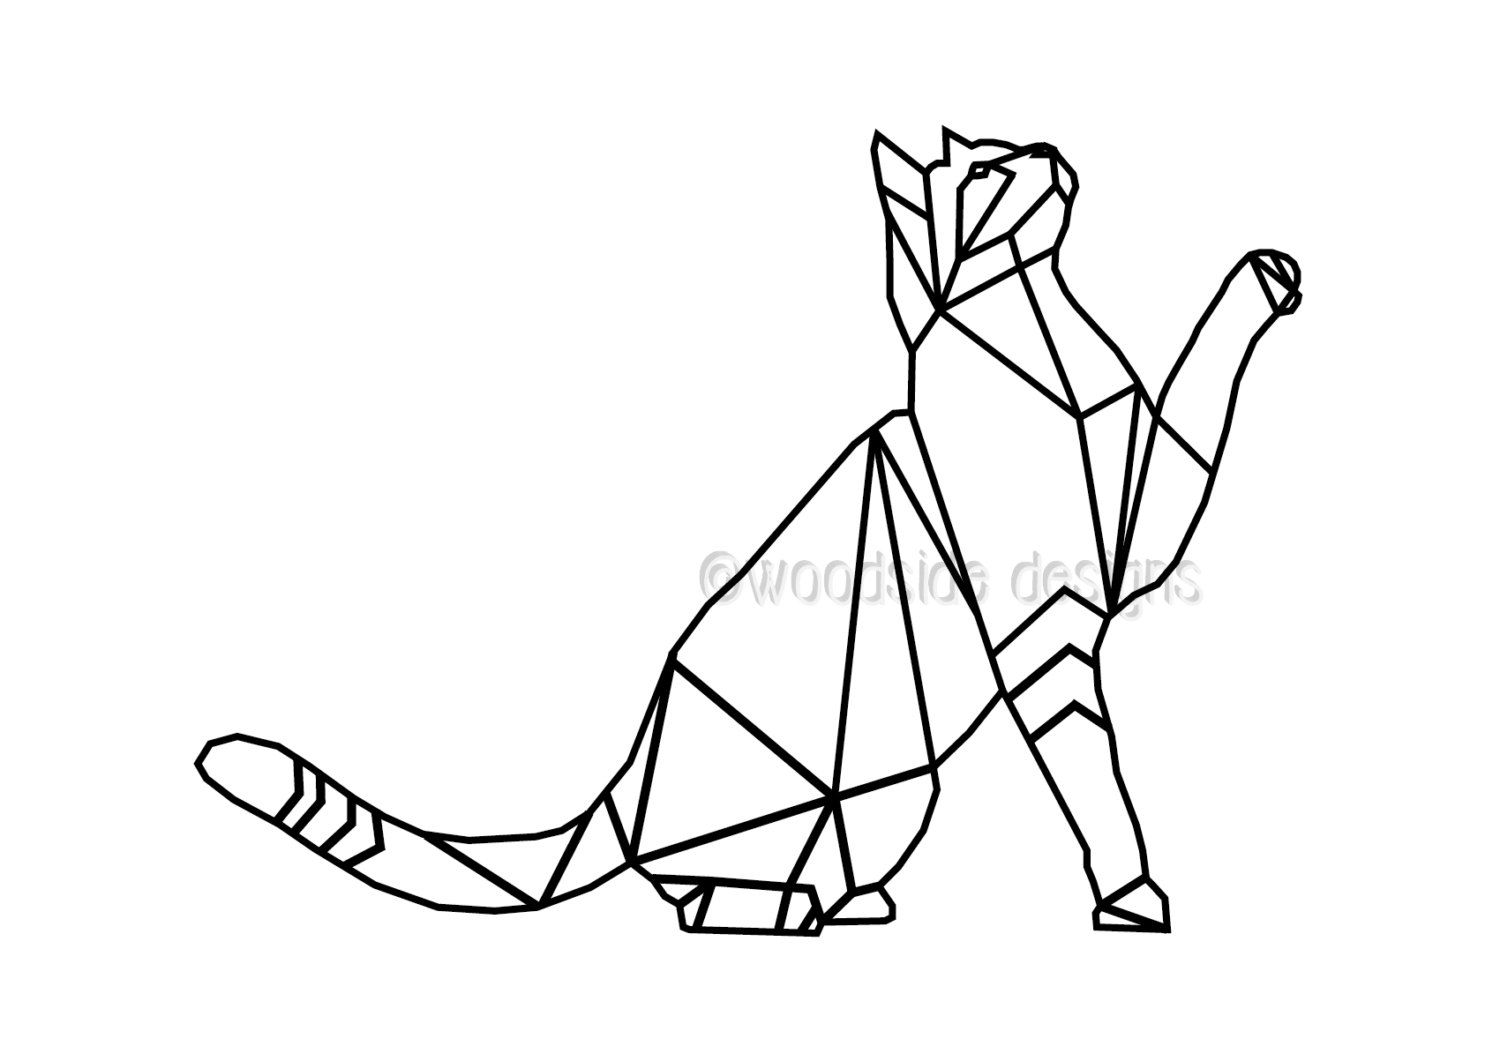 Geometric Cat Print INSTANT DOWNLOAD Wire Cat Triangular Low